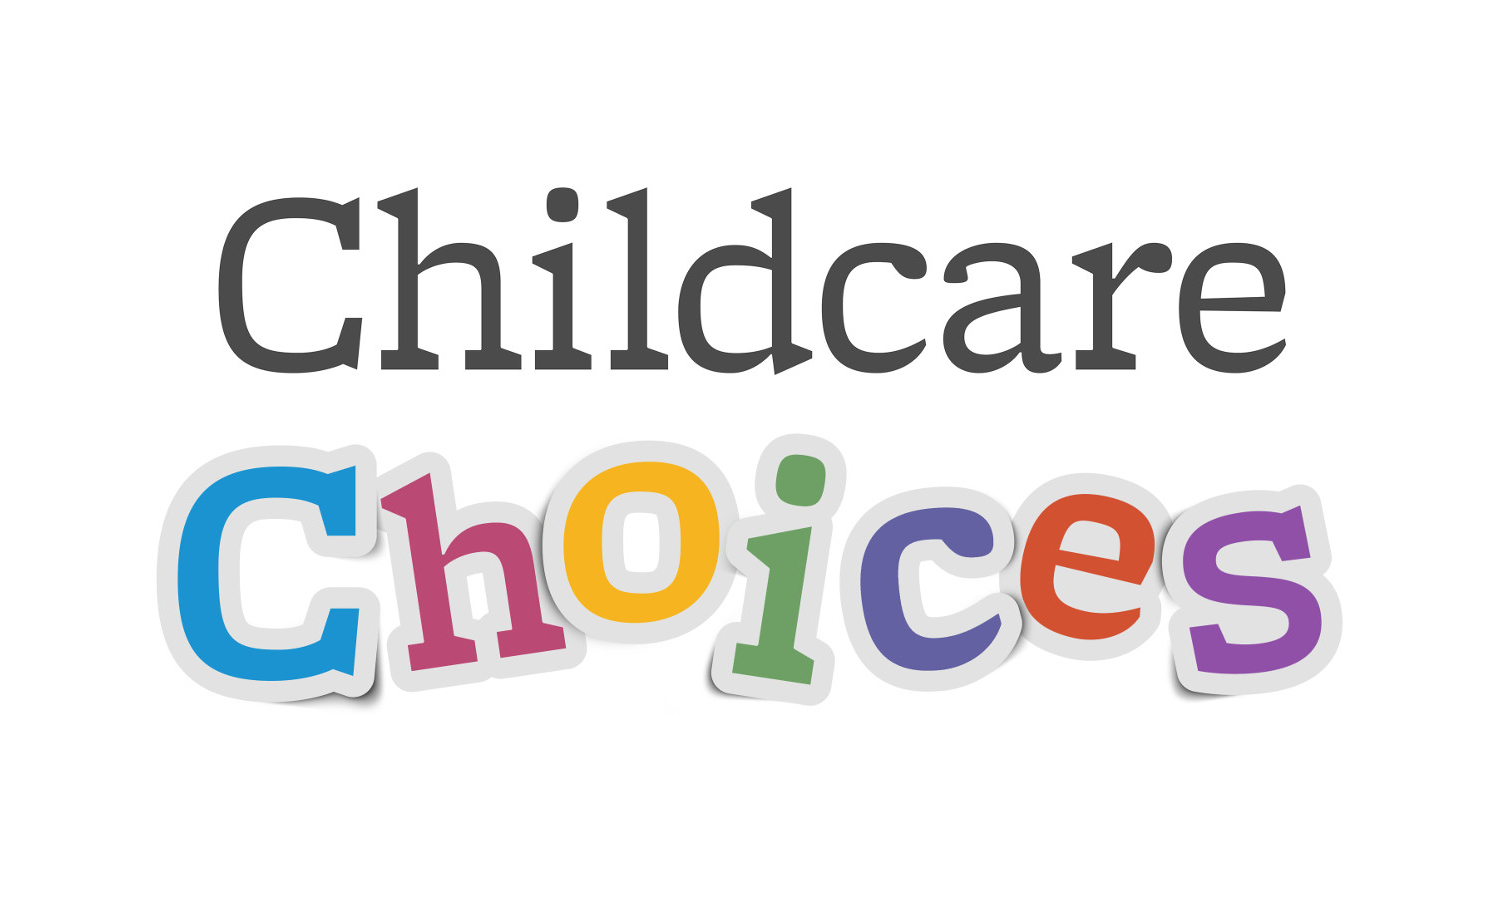 childcare-choices-from-gov-uk.jpg